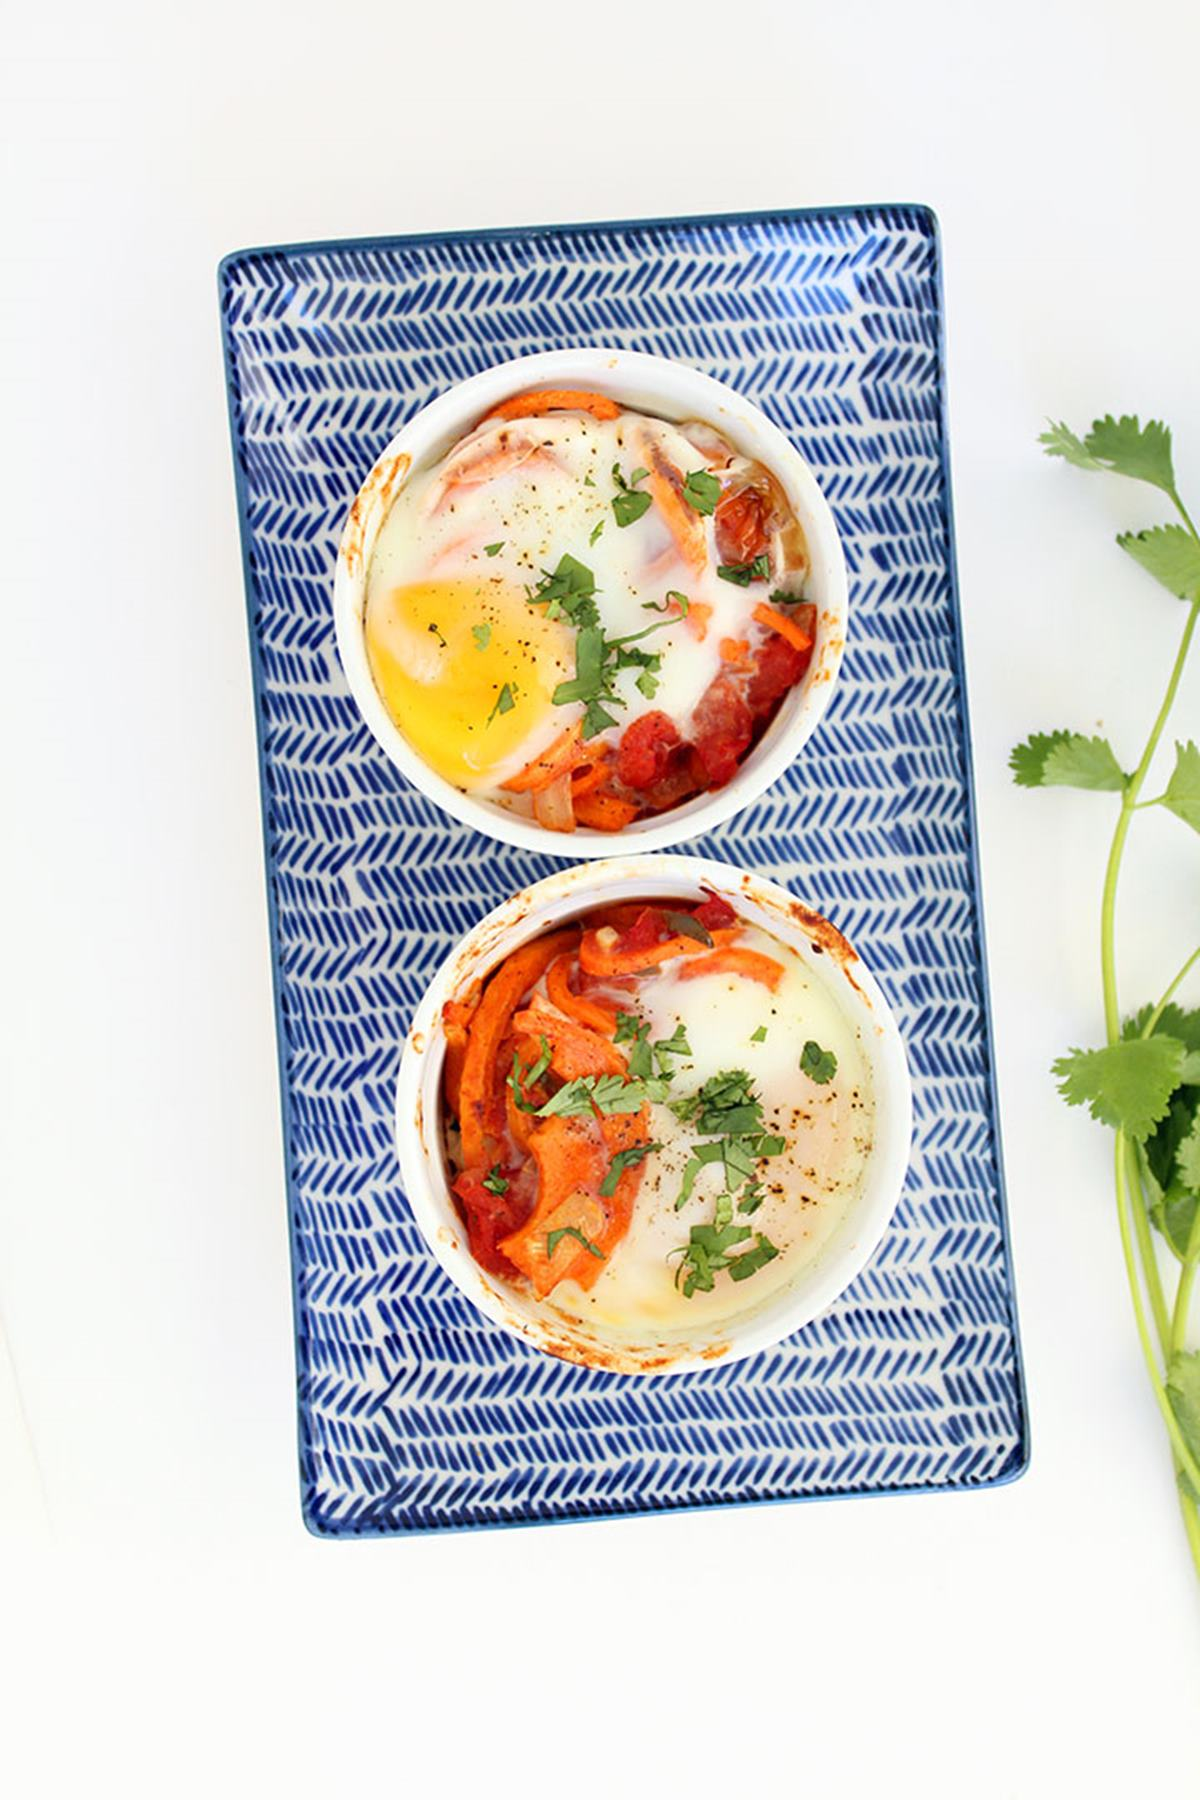 Baked Egg and Sweet Potato Bowl